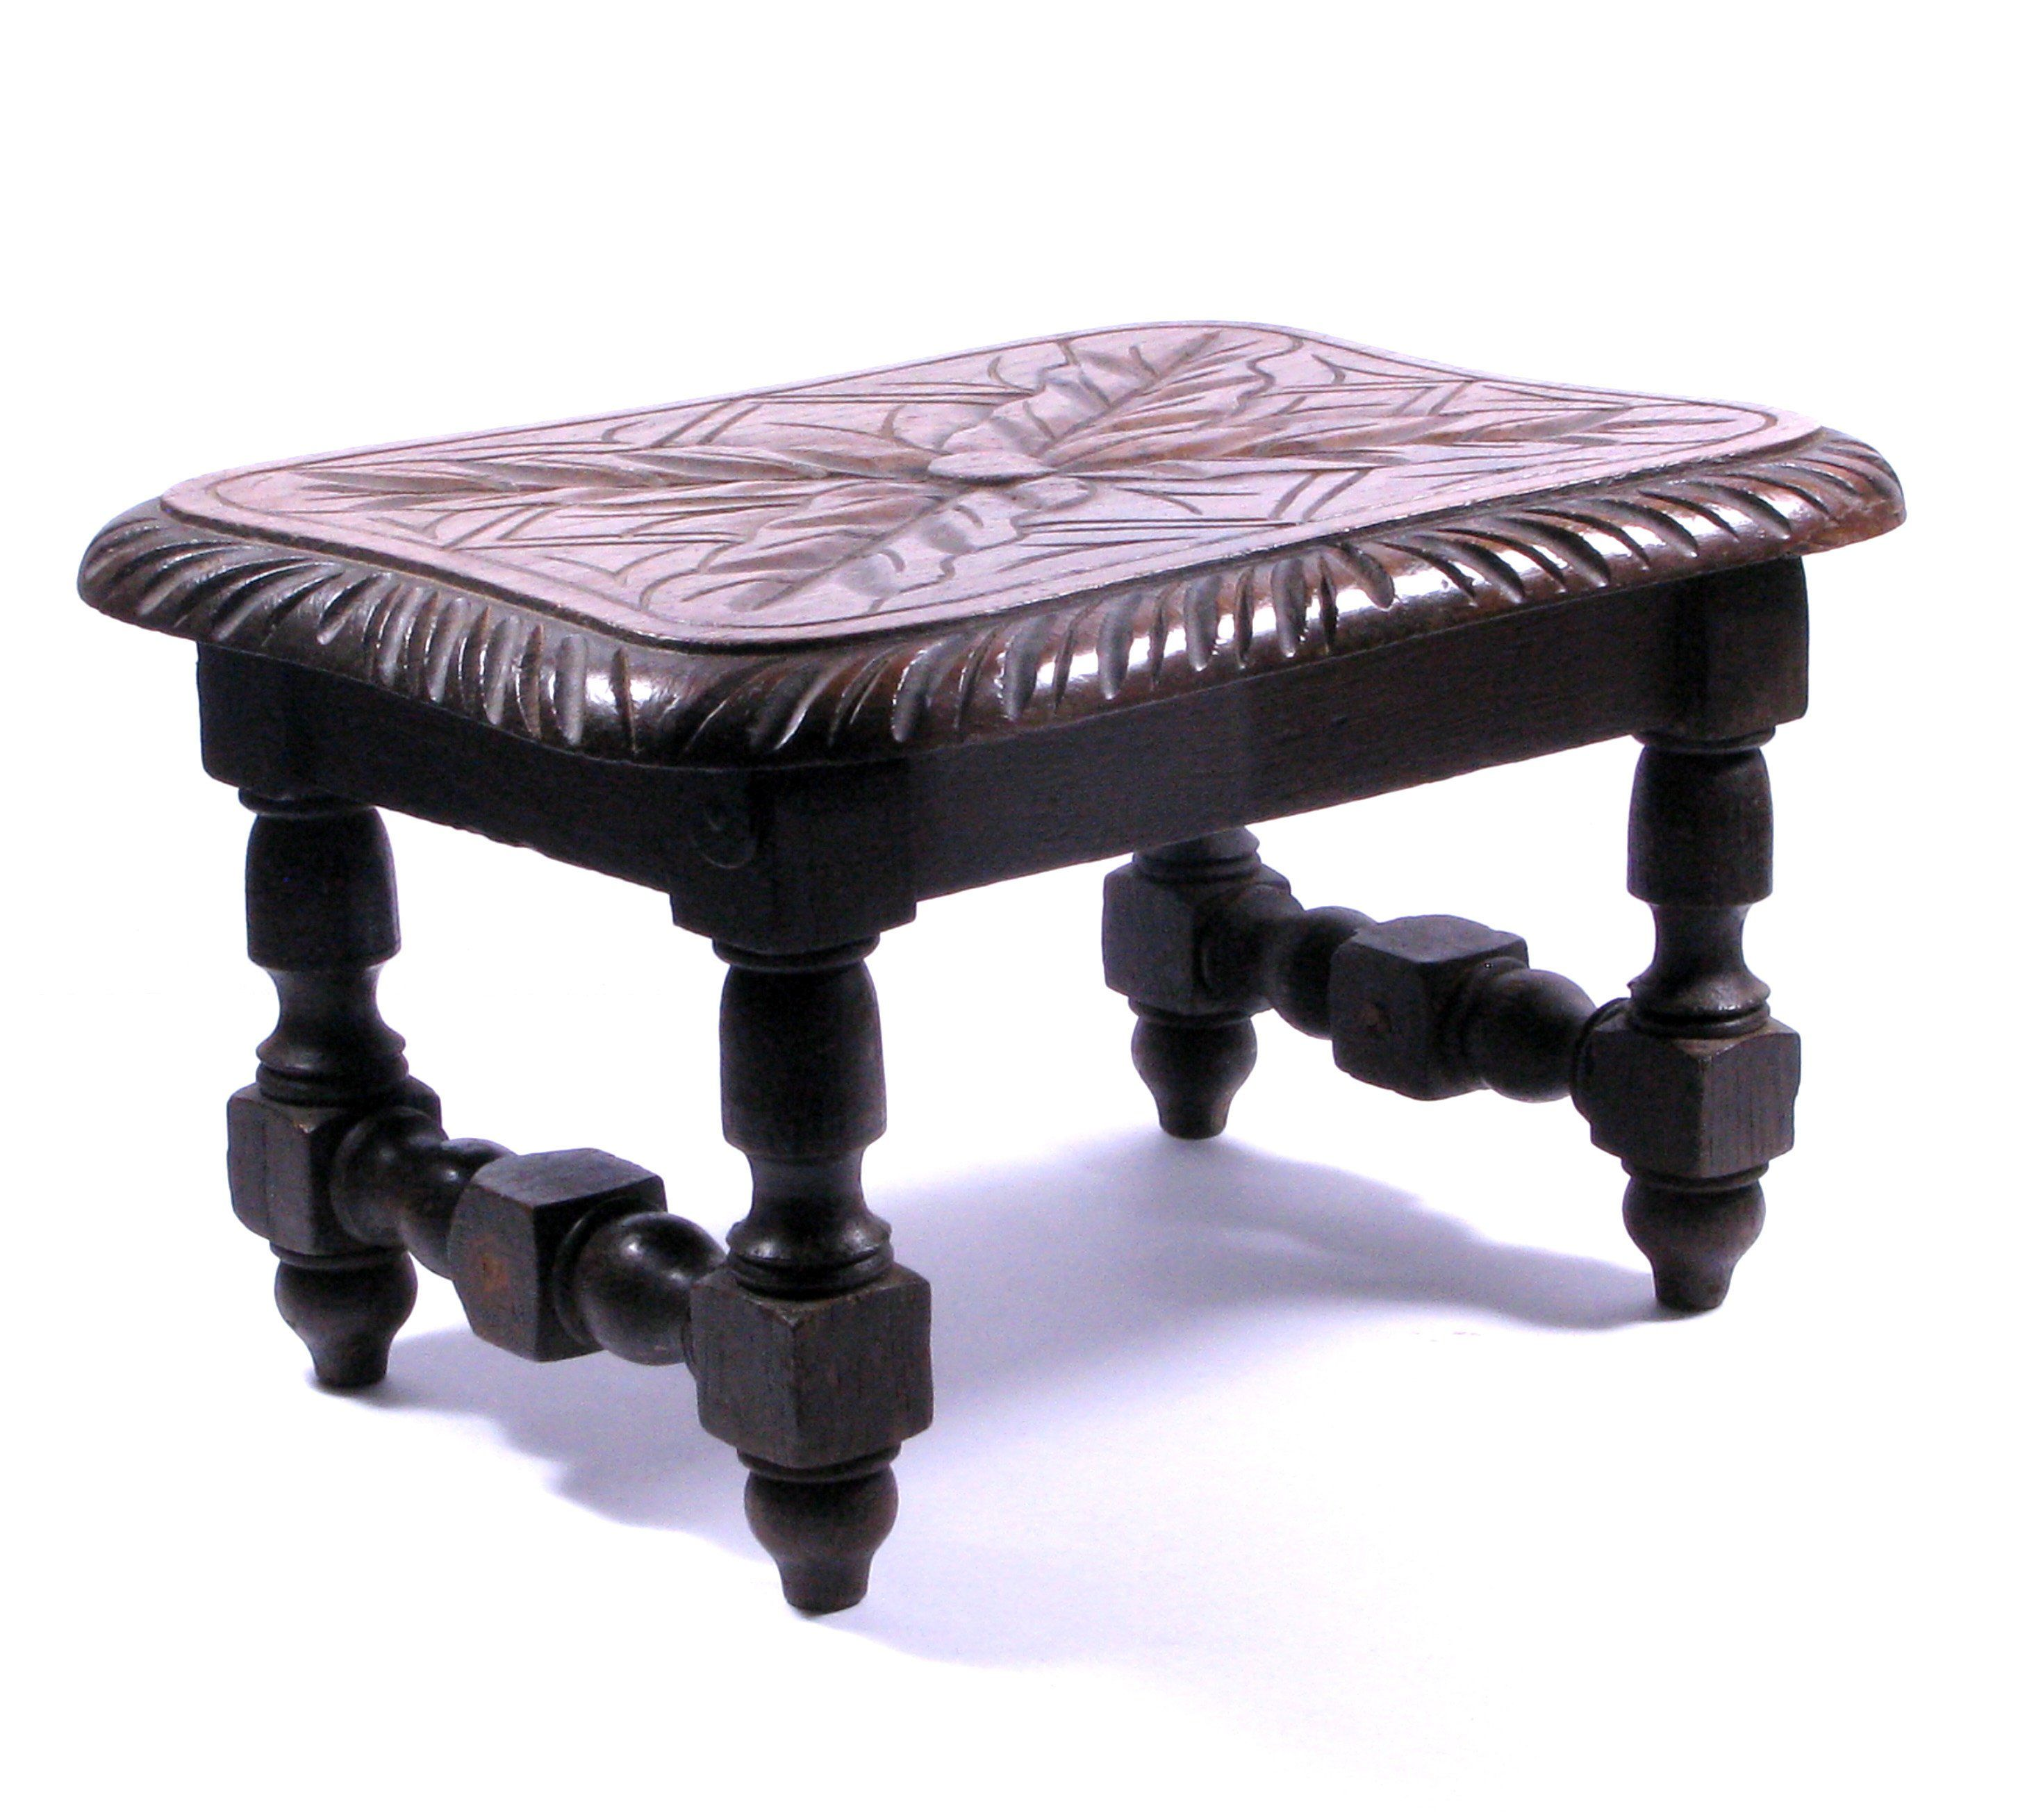 Terrific French Footstool Stool Plant Table Decorated Footstool Squirreltailoven Fun Painted Chair Ideas Images Squirreltailovenorg